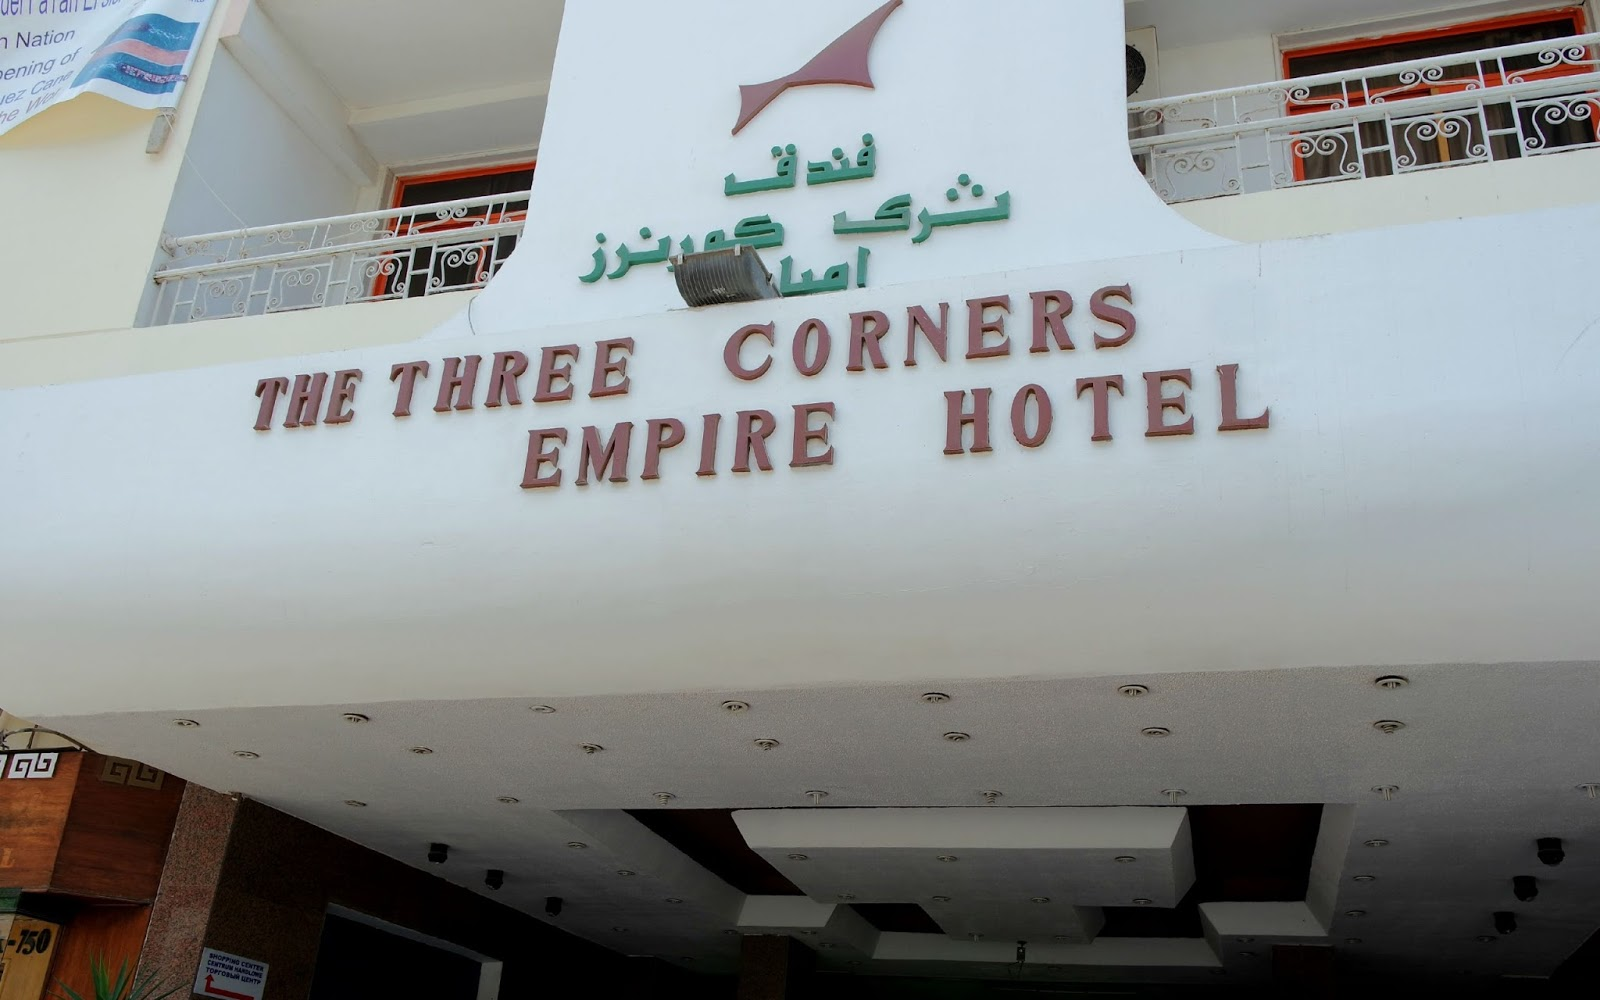 Como é se hospedar no The Three Corners Empire Hotel? - Hurghada, Egito